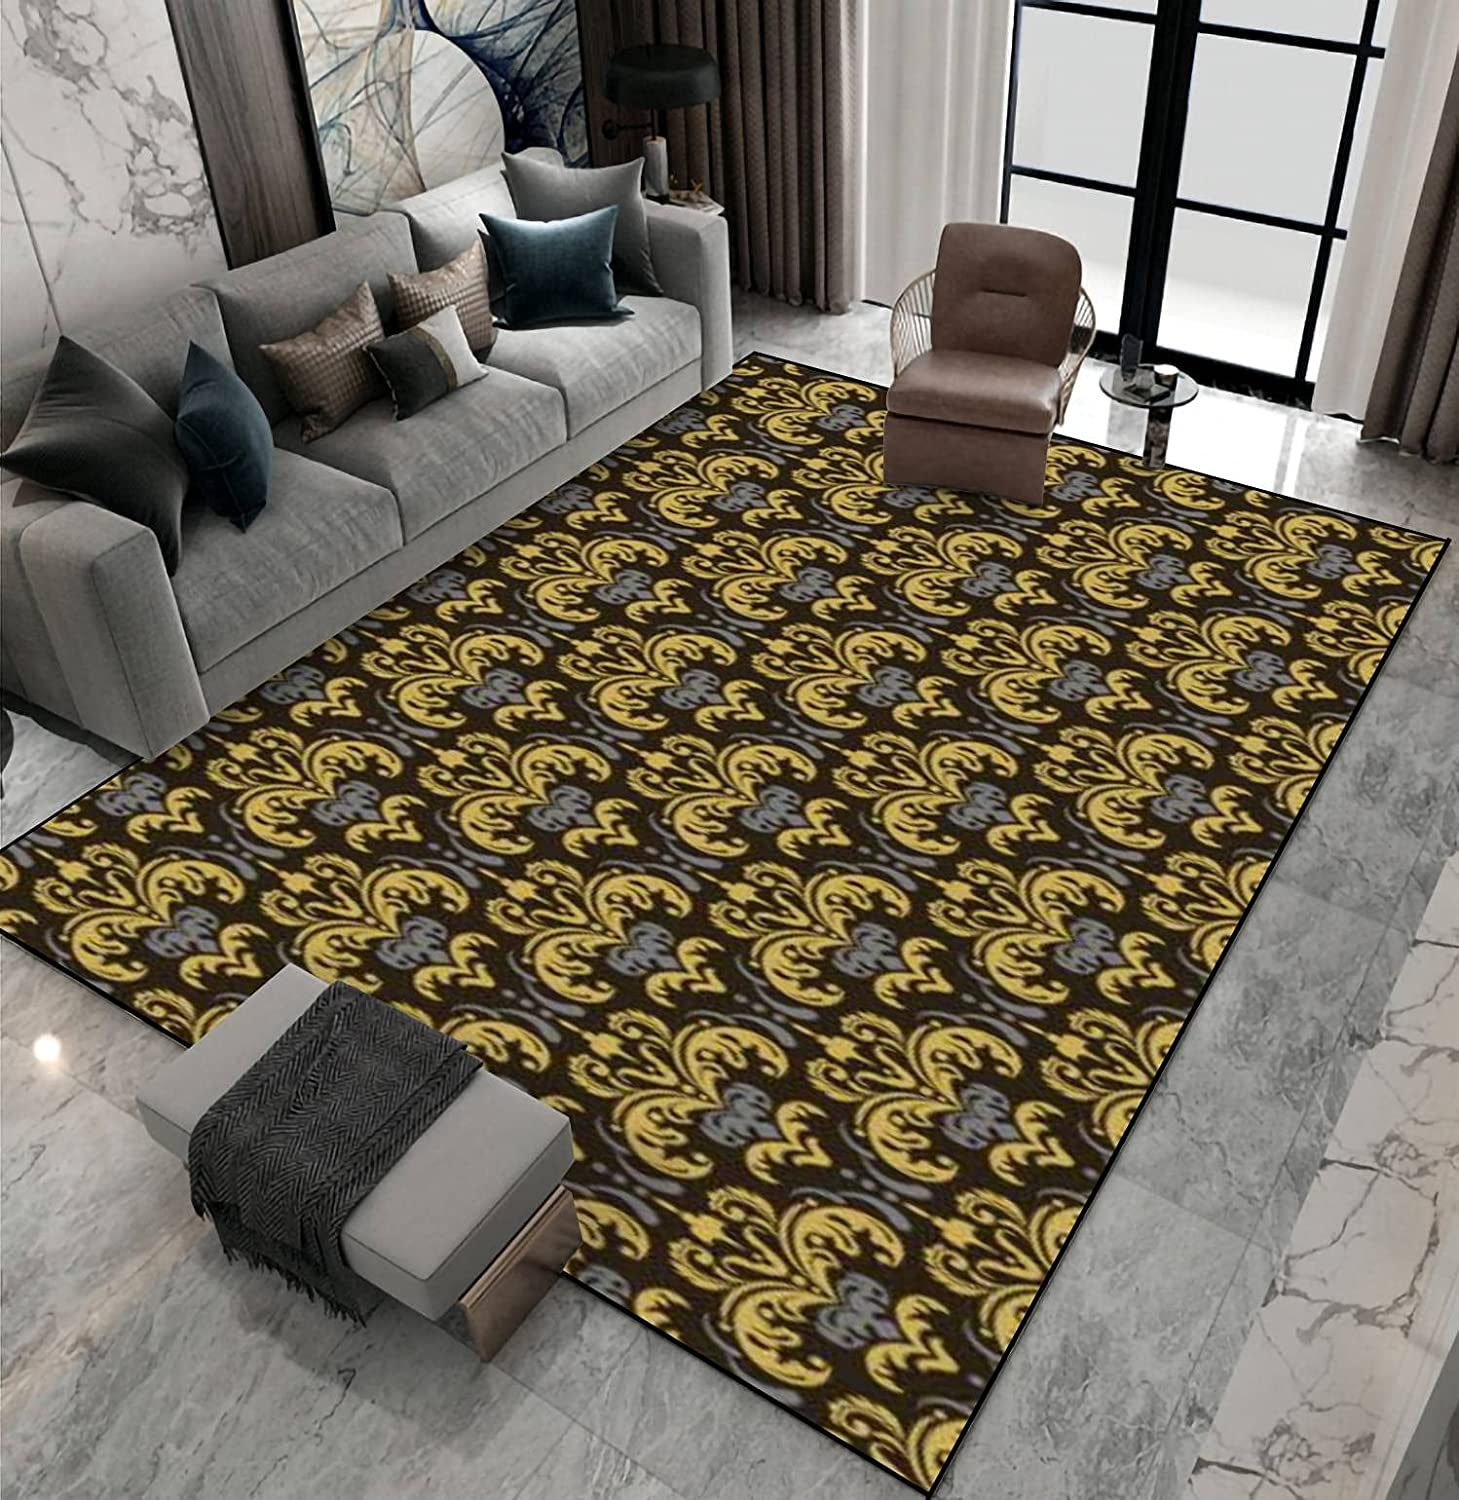 Area Rug Non-Slip Floor Mat Pattern Mail order cheap Background in Floral 2021new shipping free shipping Vintage